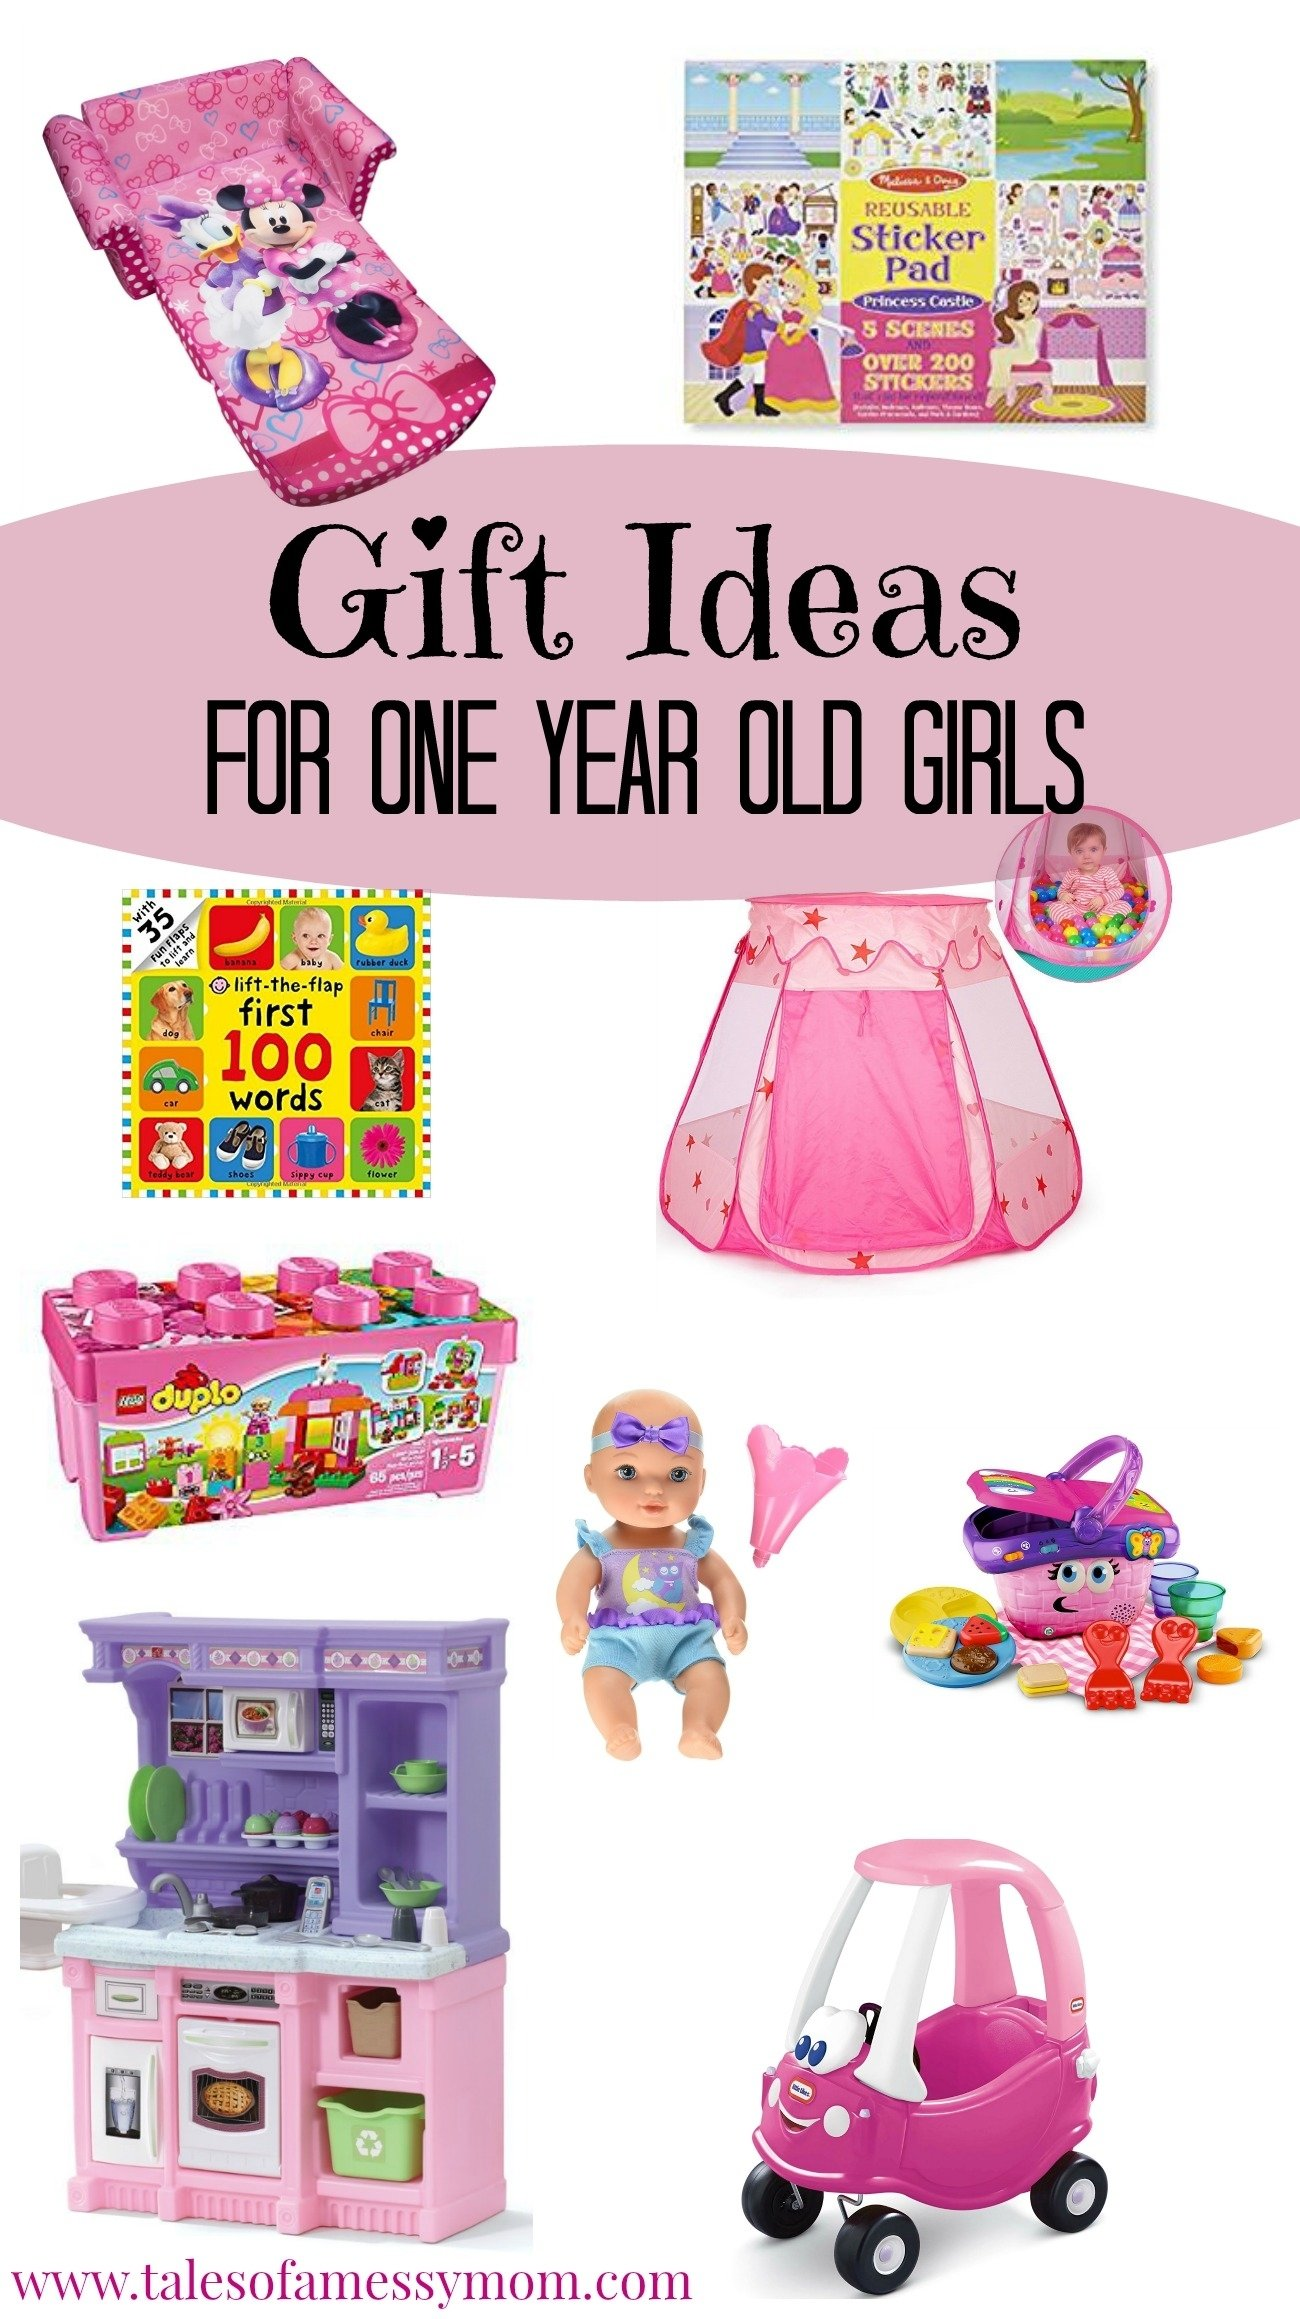 10 Lovely Gift Ideas For One Year Old gift ideas for one year old girls tales of a messy mom 4 2021